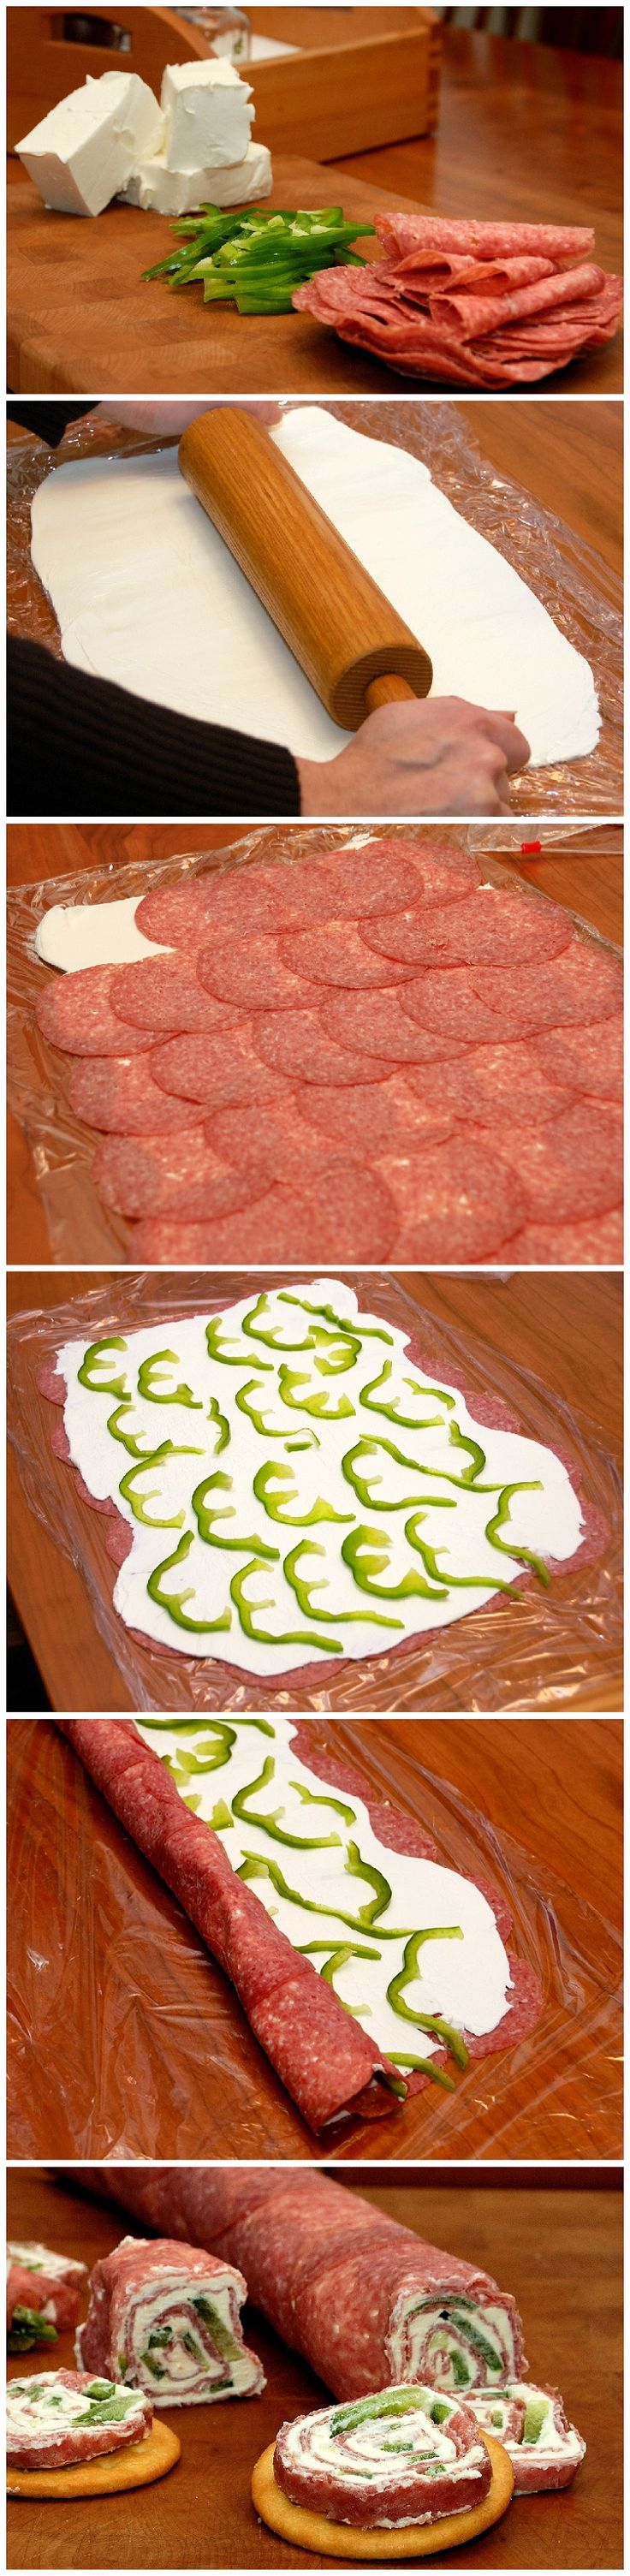 Salami and Cream Cheese Roll-ups #meat